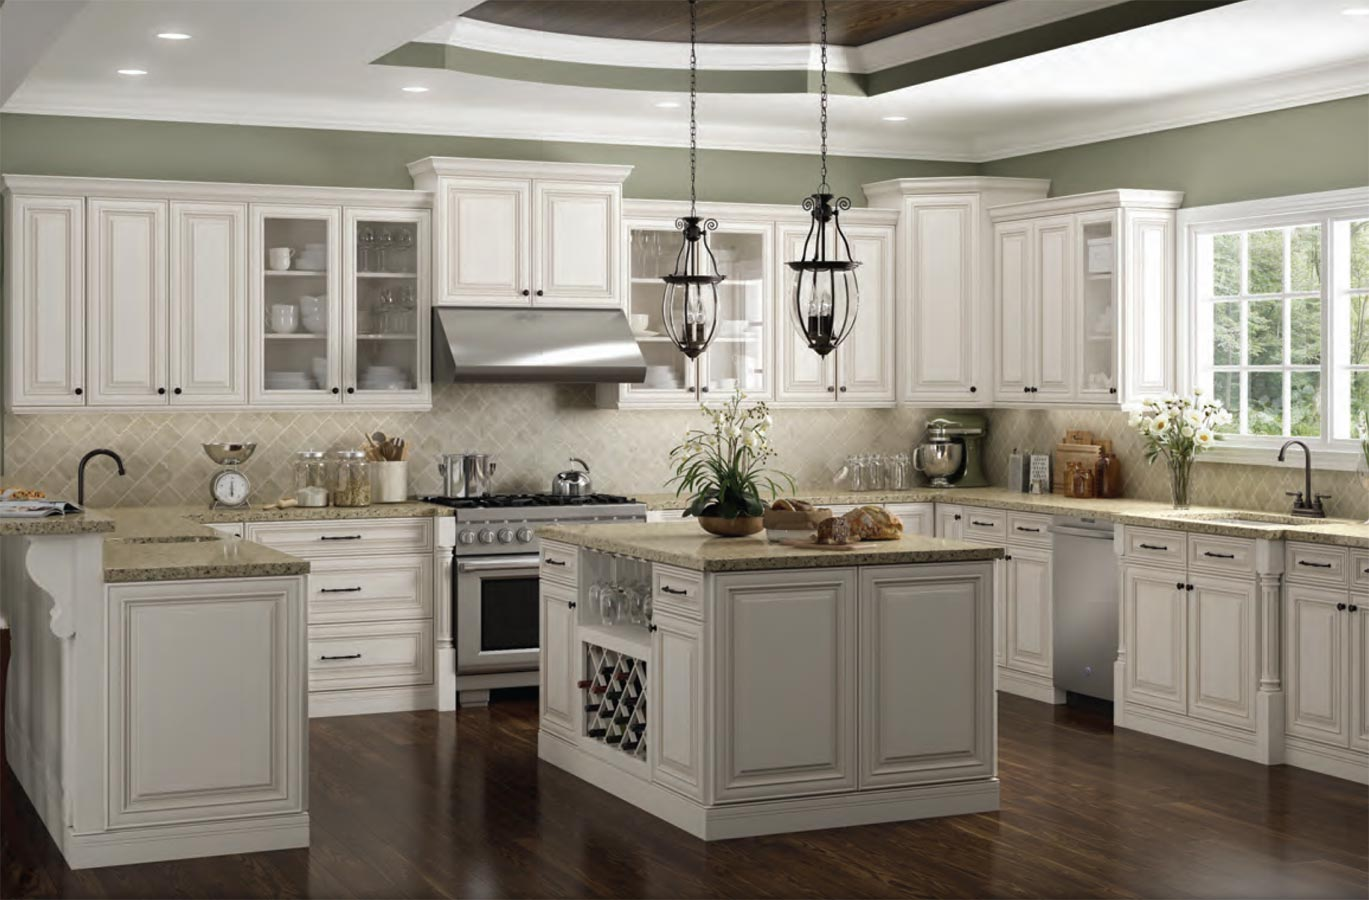 Painted kitchen cabinets cabinet ideas houselogic home for White cabinets